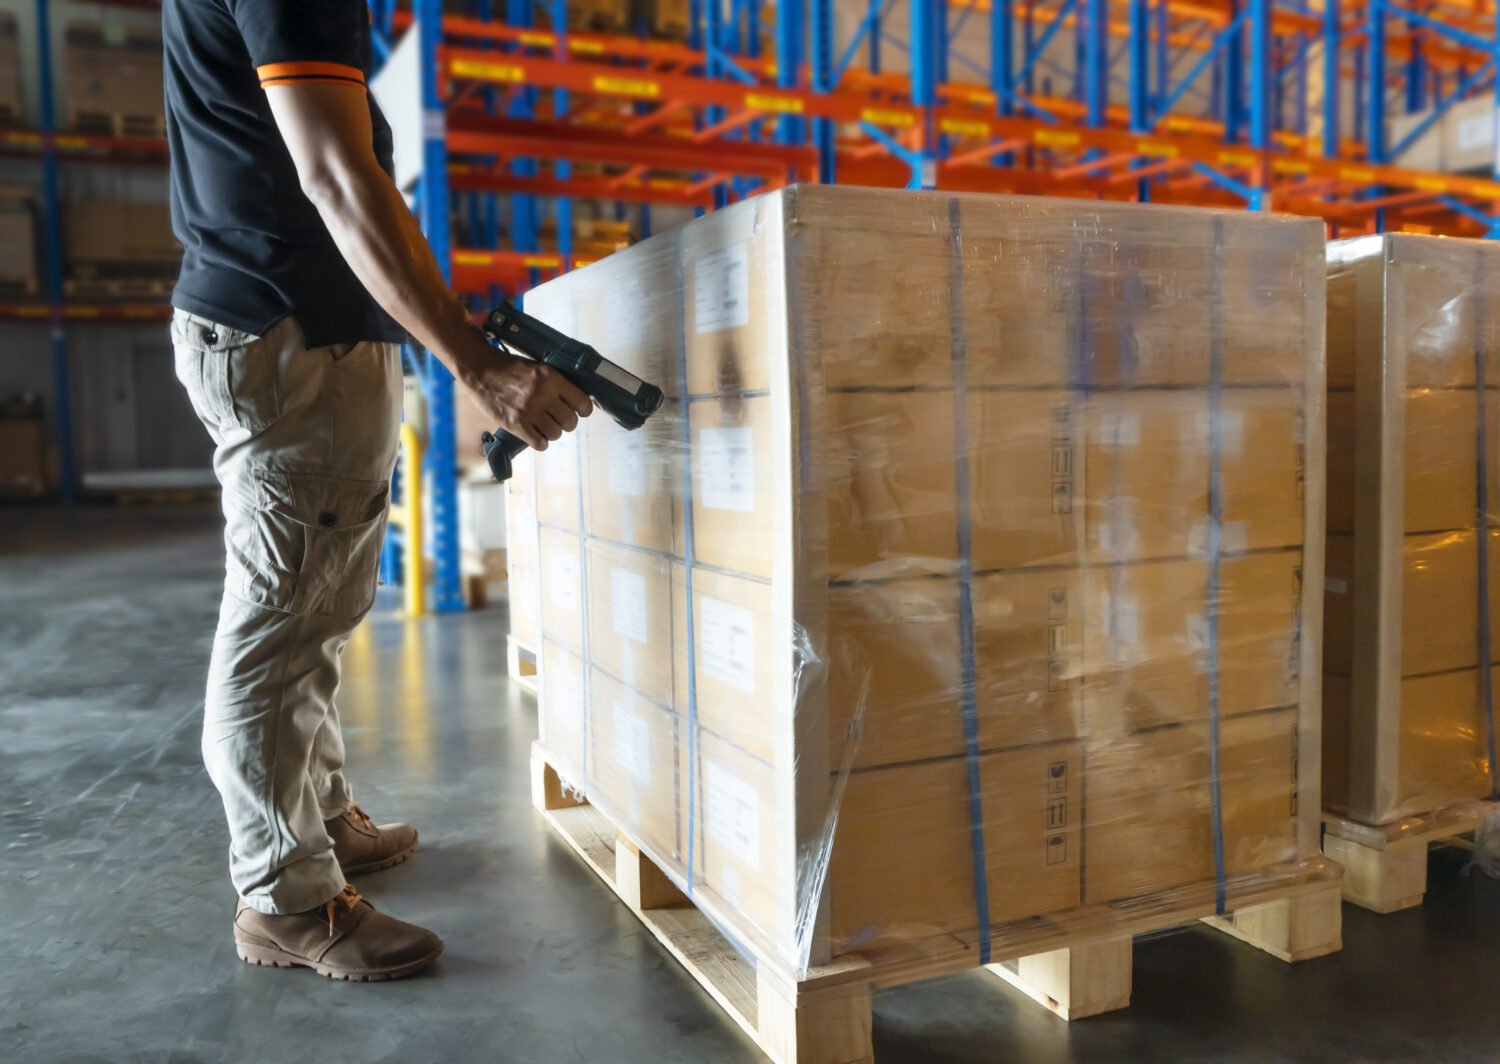 warehouse worker using barcode inventory systems